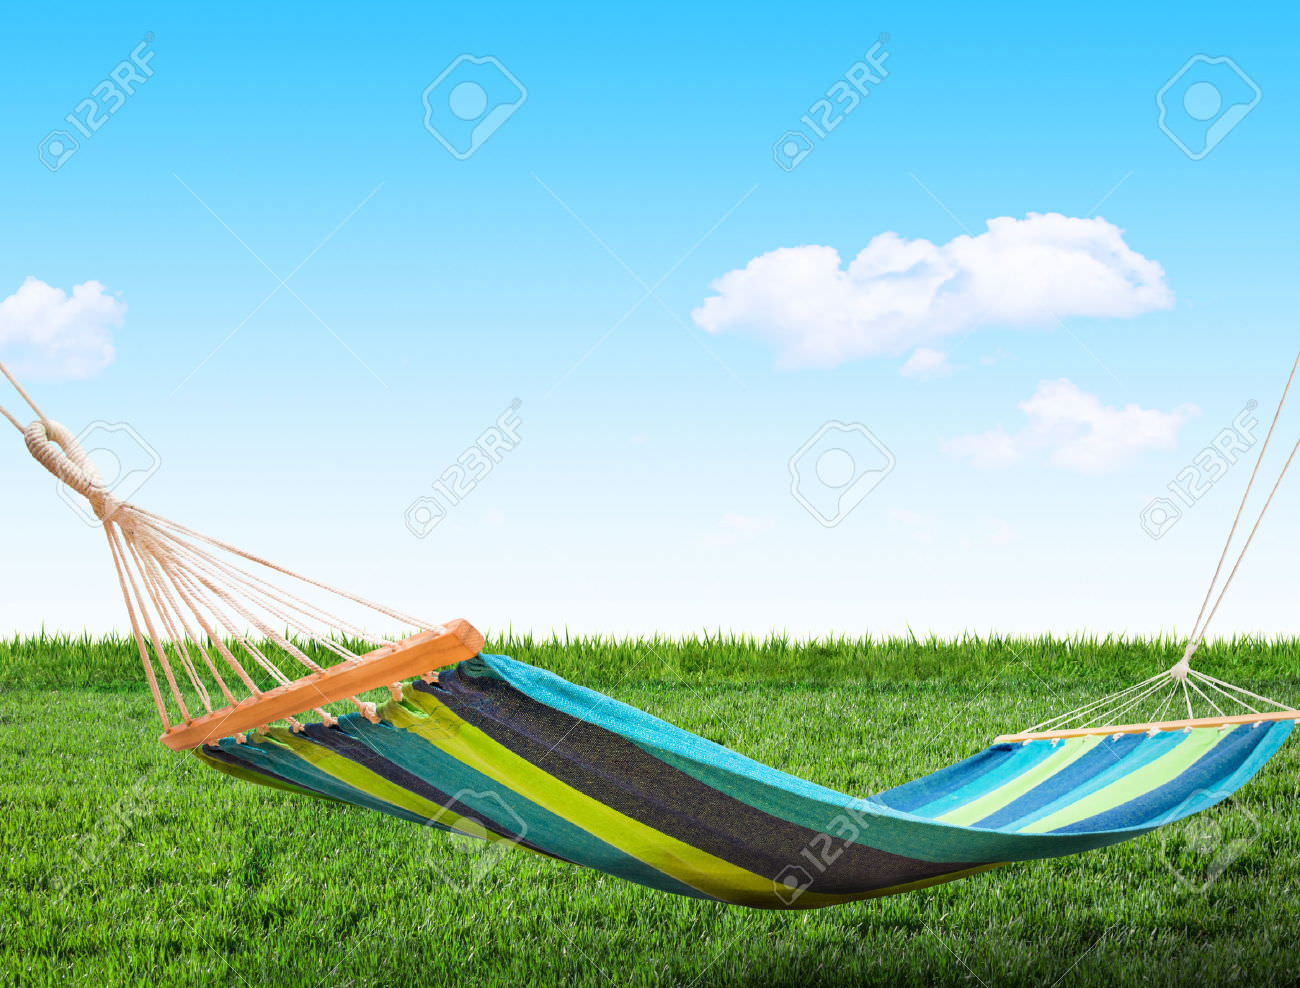 Relaxing on Hammock in Backyard